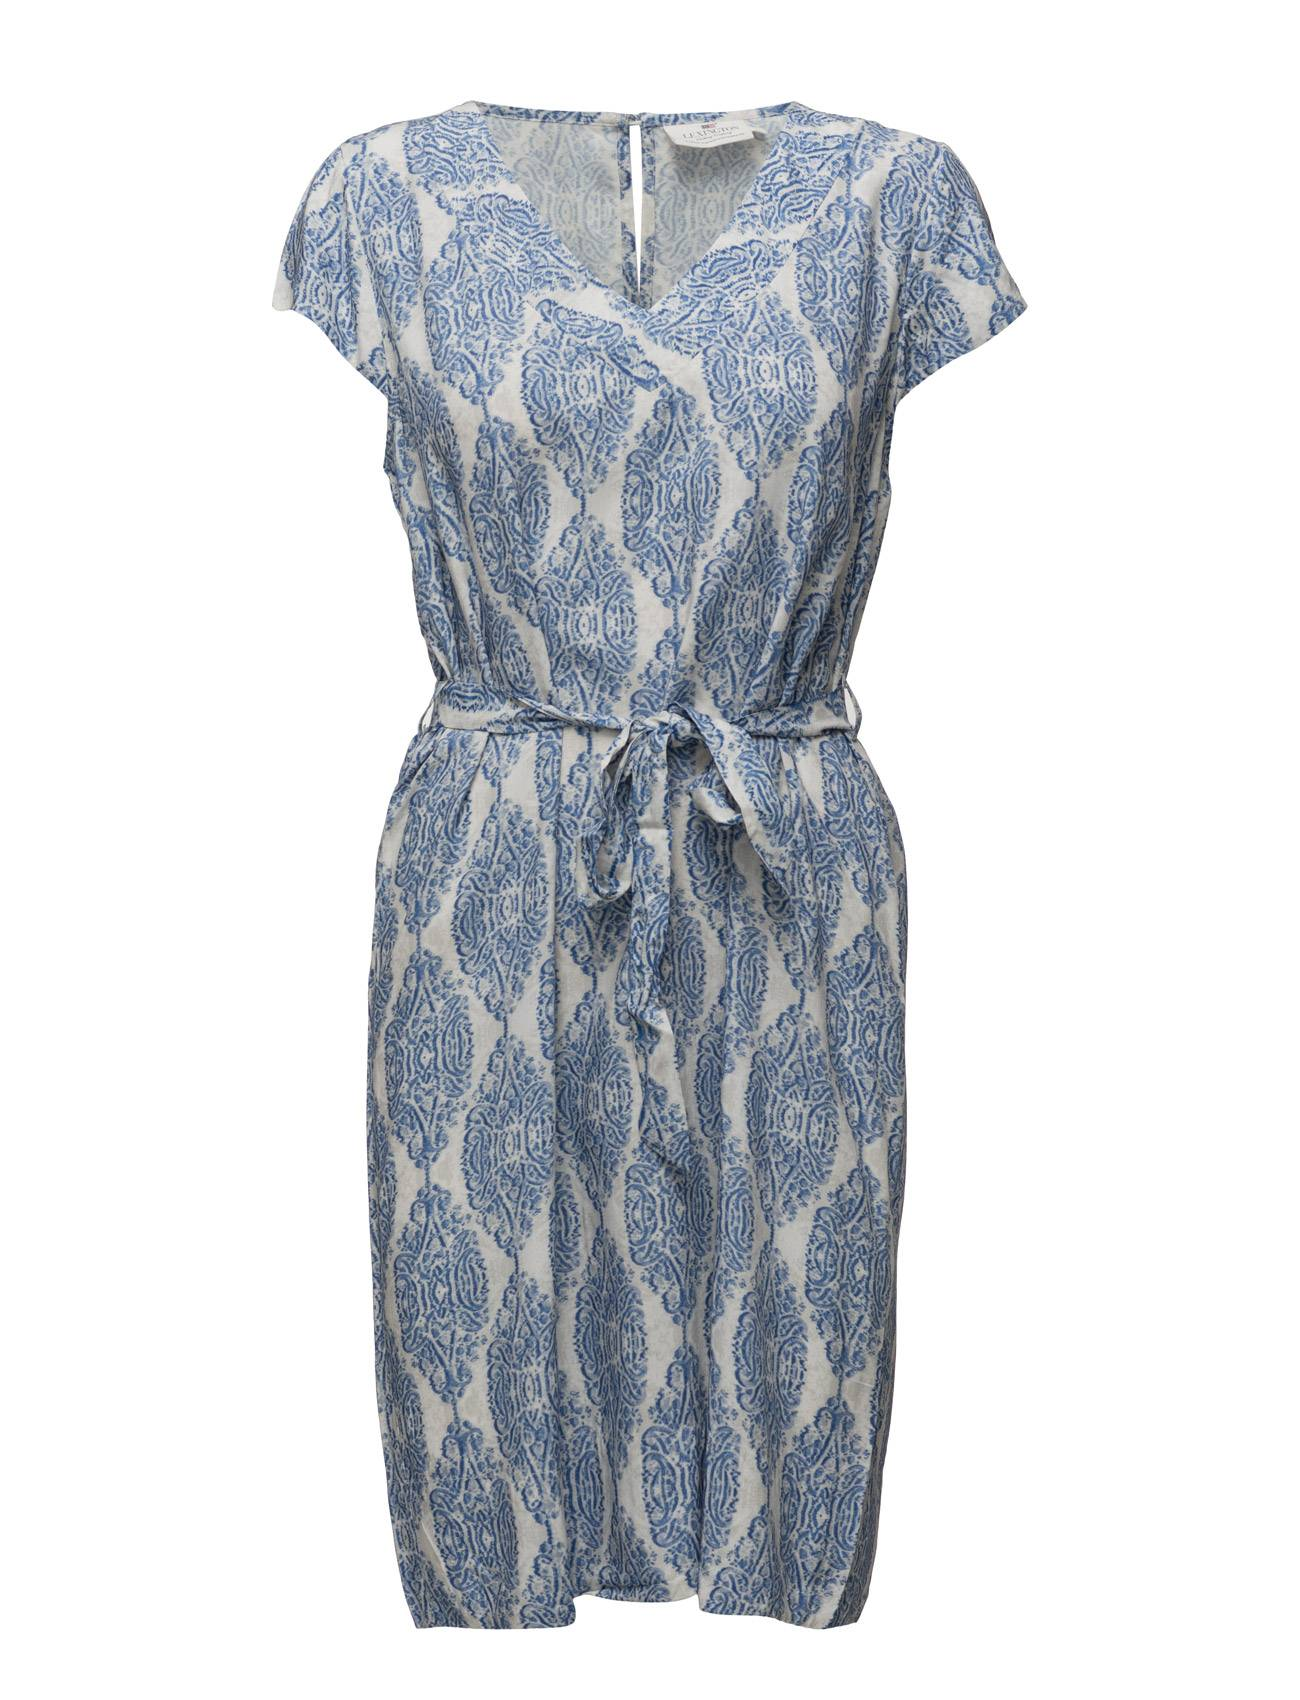 Lexington Company Kristina Paisley Dress